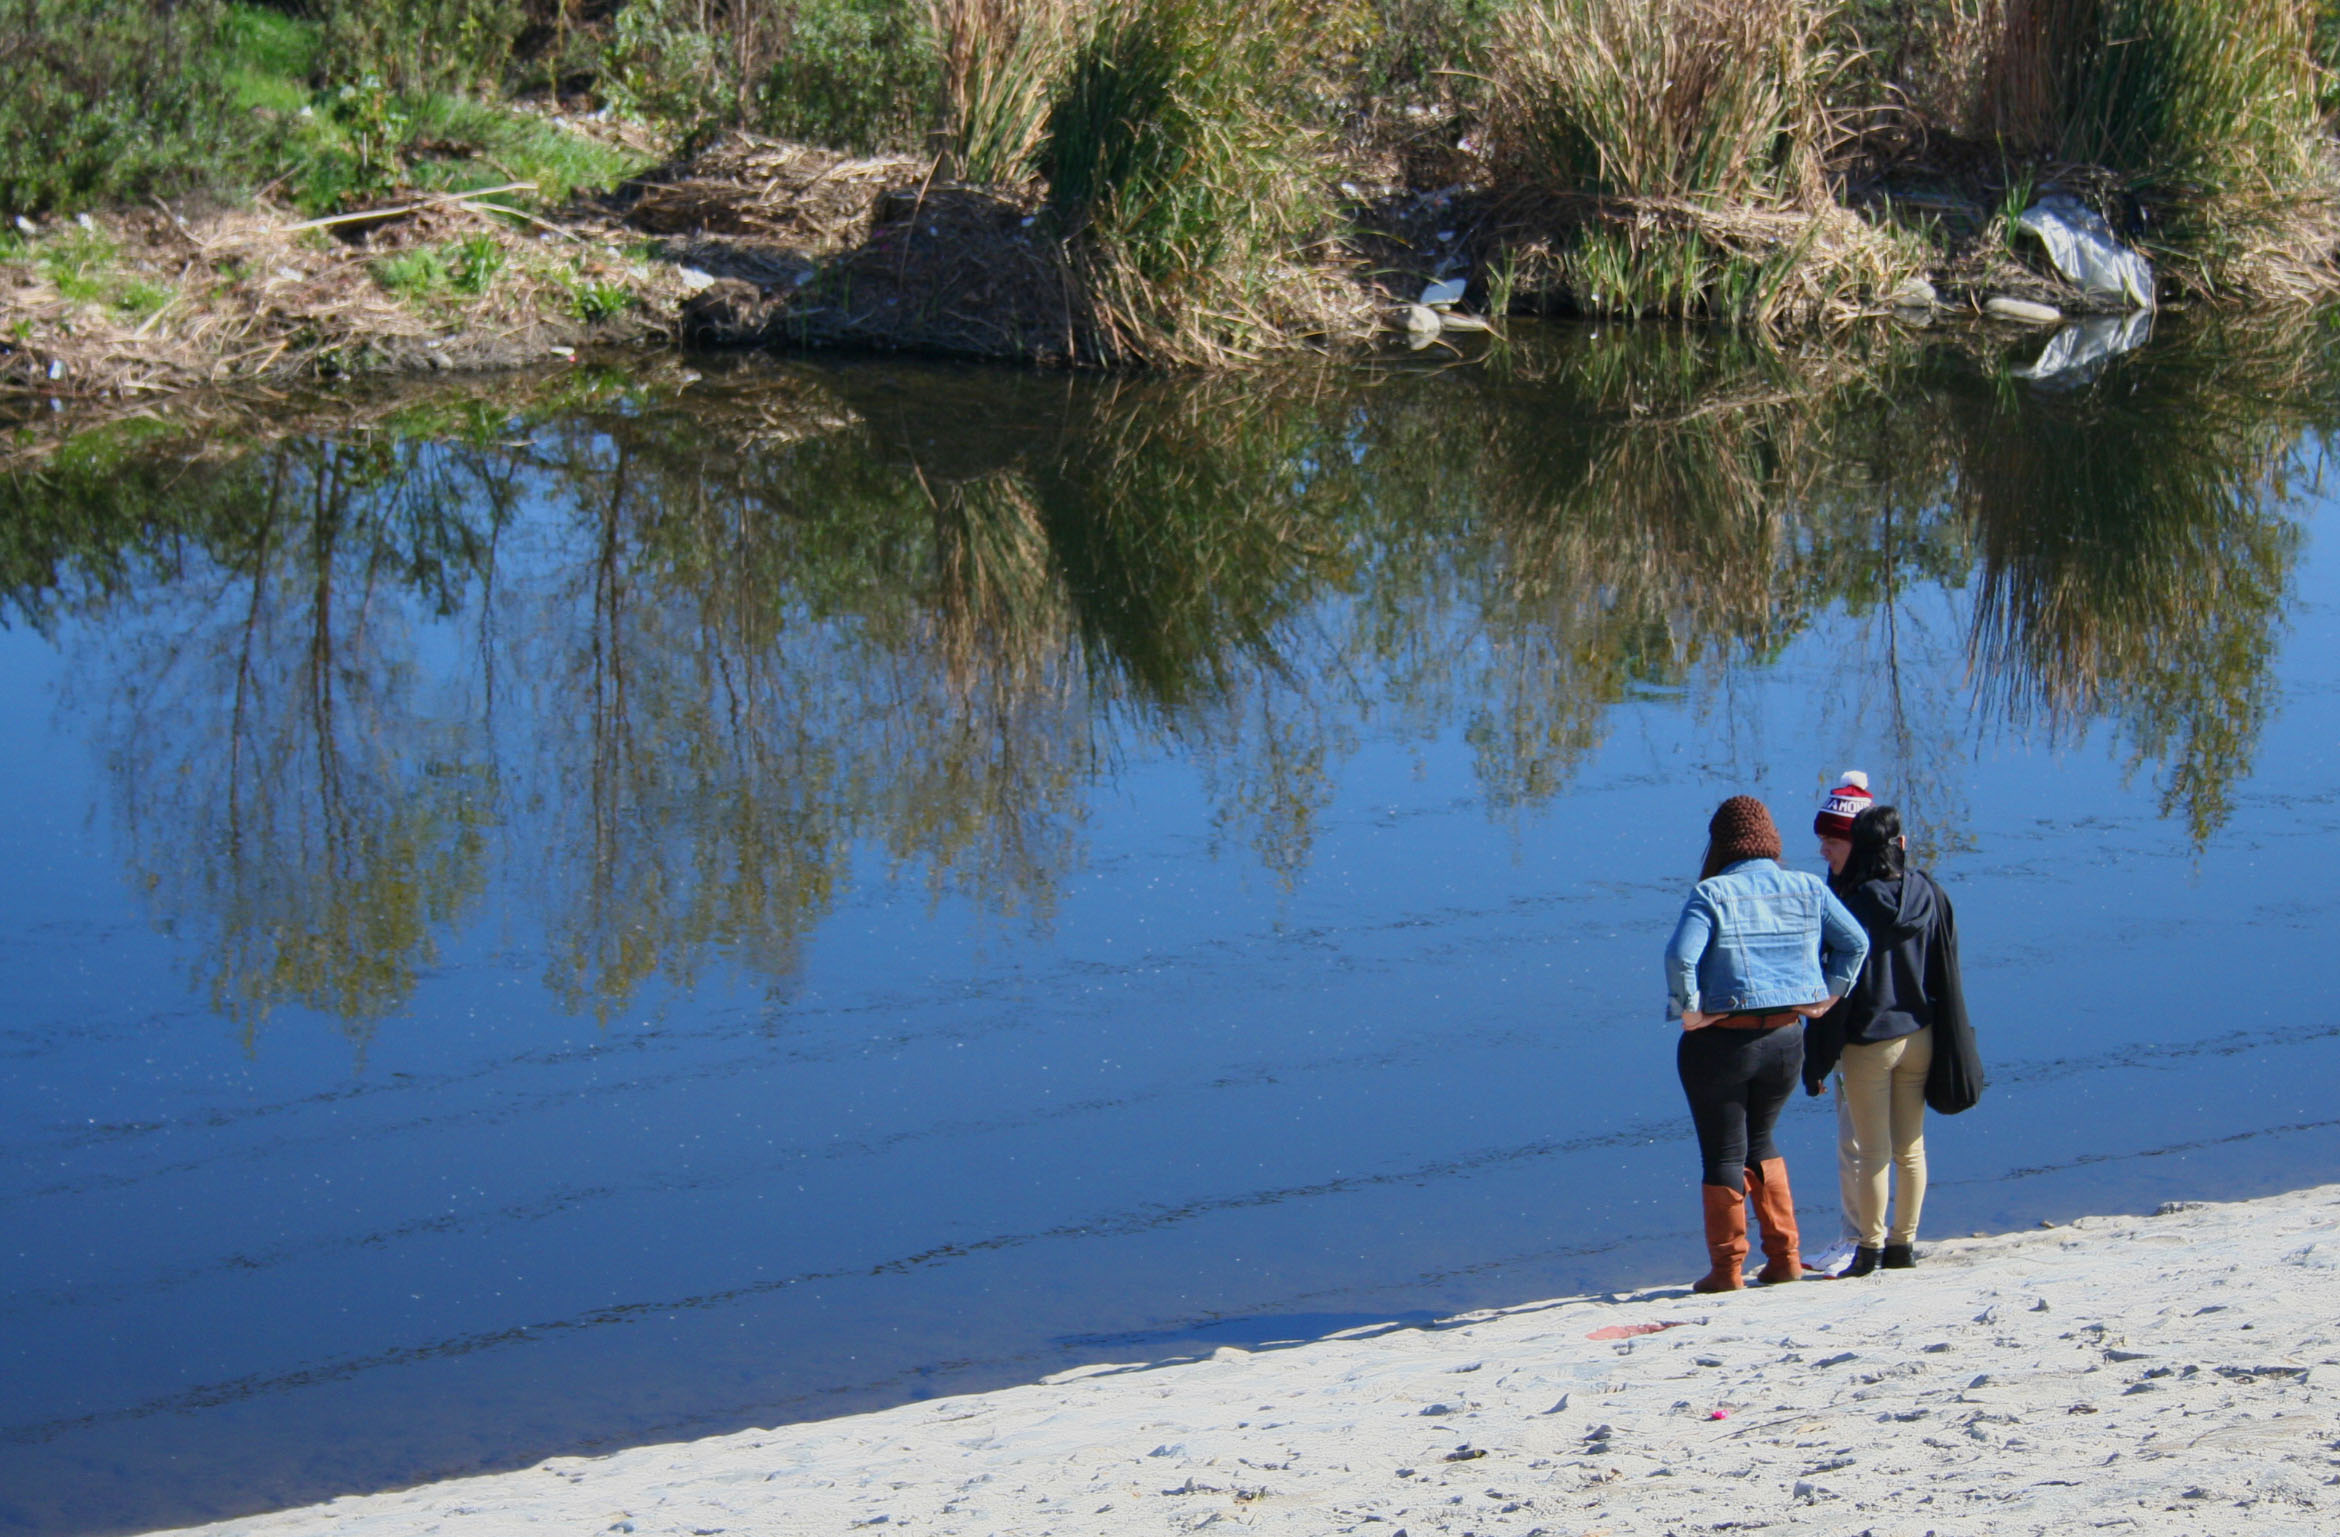 Students from L.A. Leadership Academy on the rivers edge